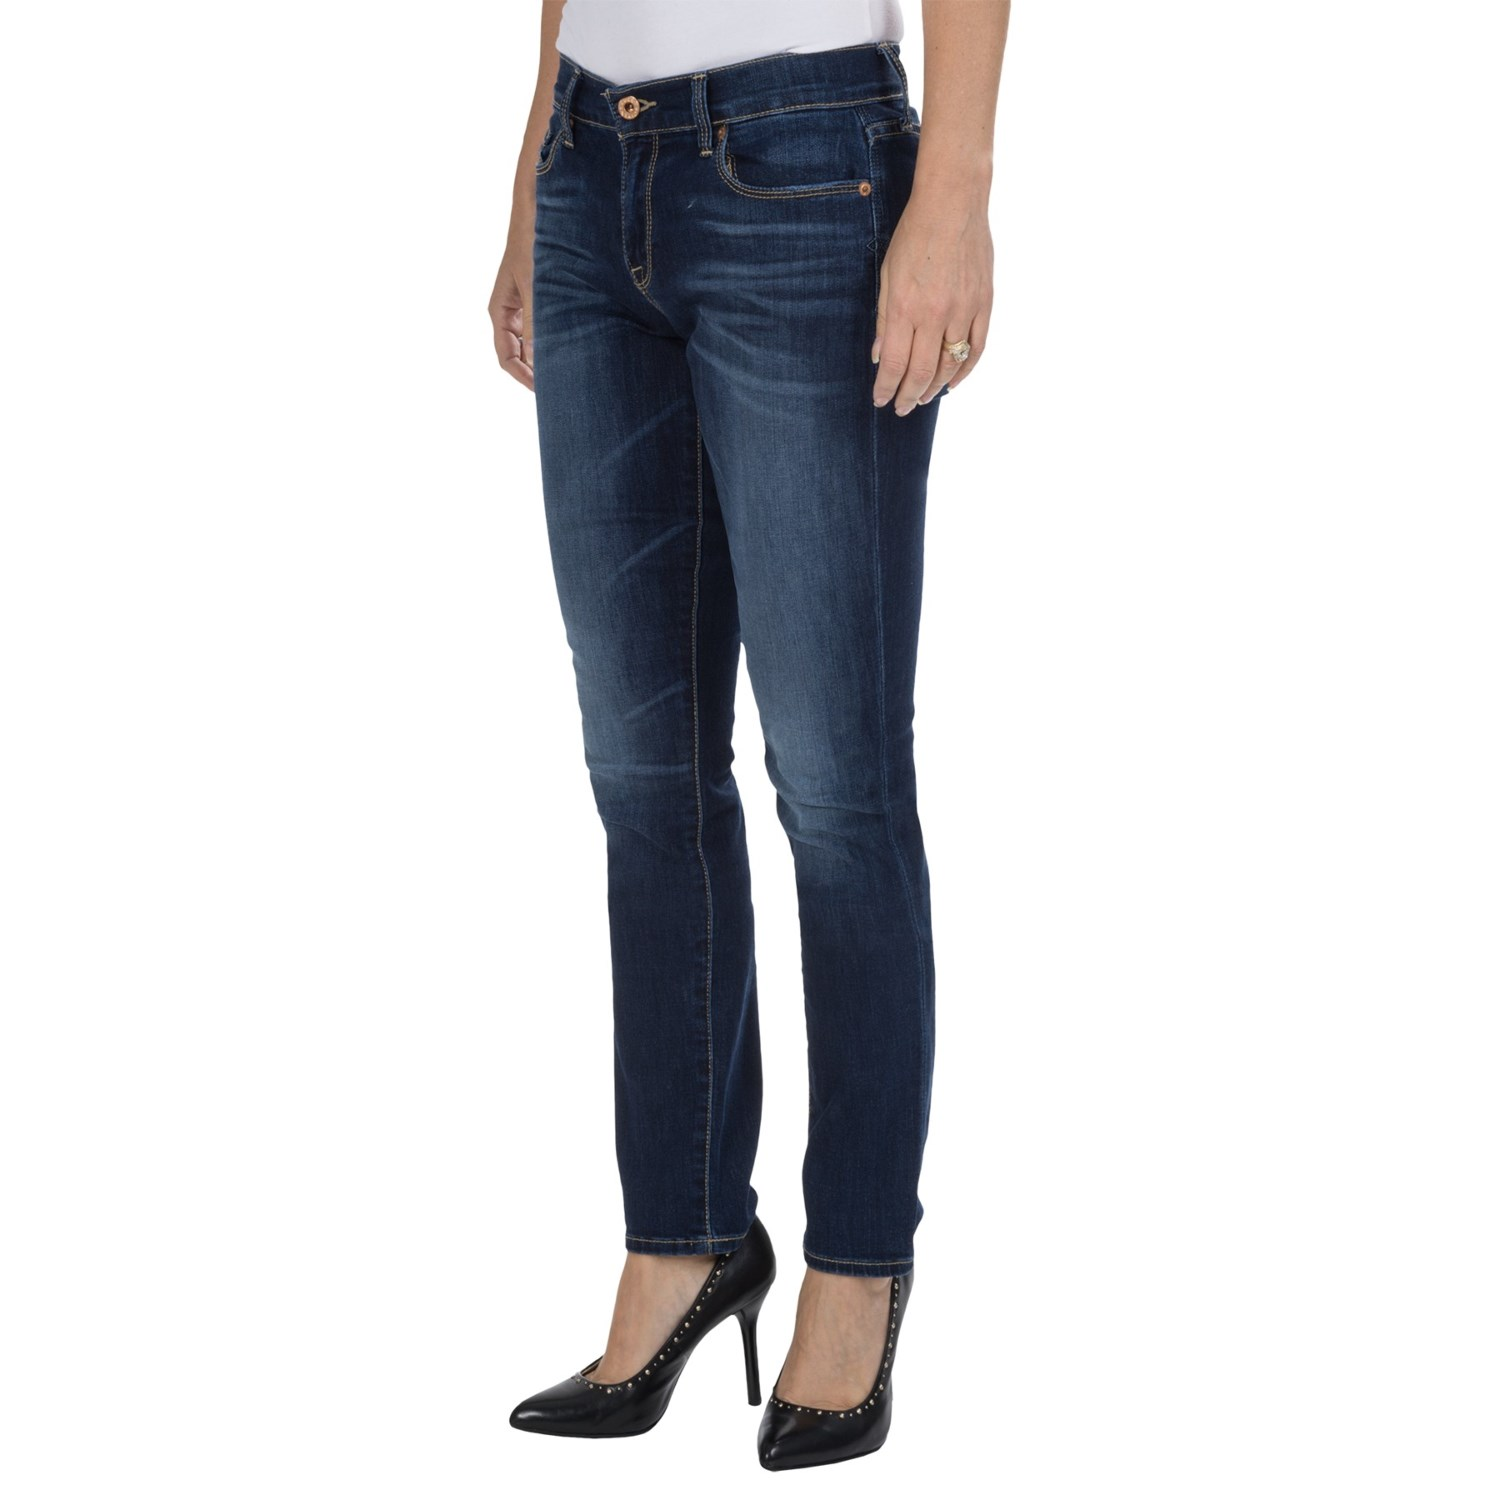 Shop women's jeans and denim from White House Black Market. Jeans for every body. Free shipping for all WHBM rewards members.